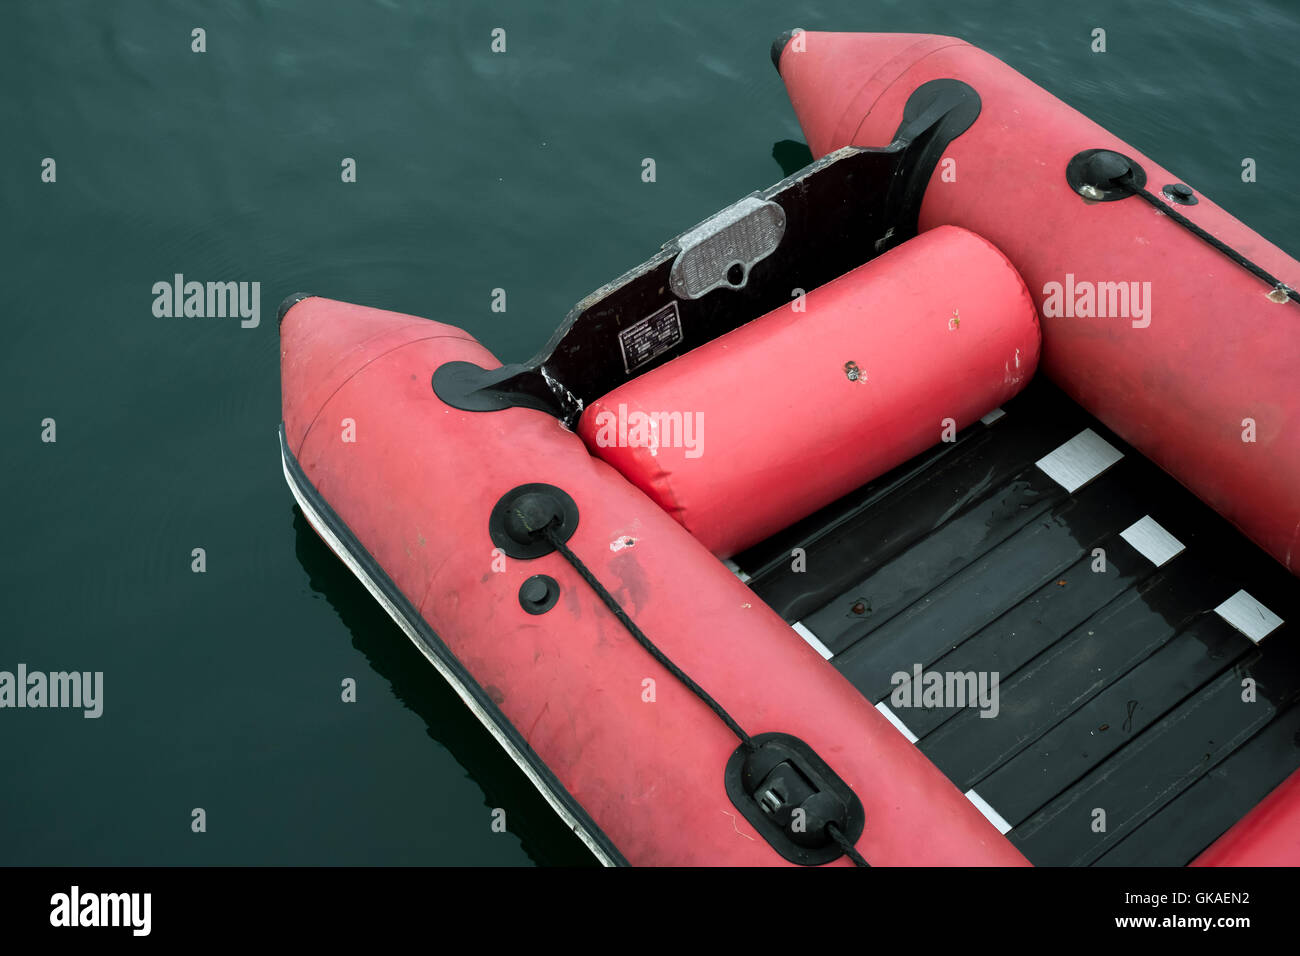 A red rigid inflatable dinghy contrasted against the green waters of the Carrick Roads in Falmouth, Cornwall 19th - Stock Image